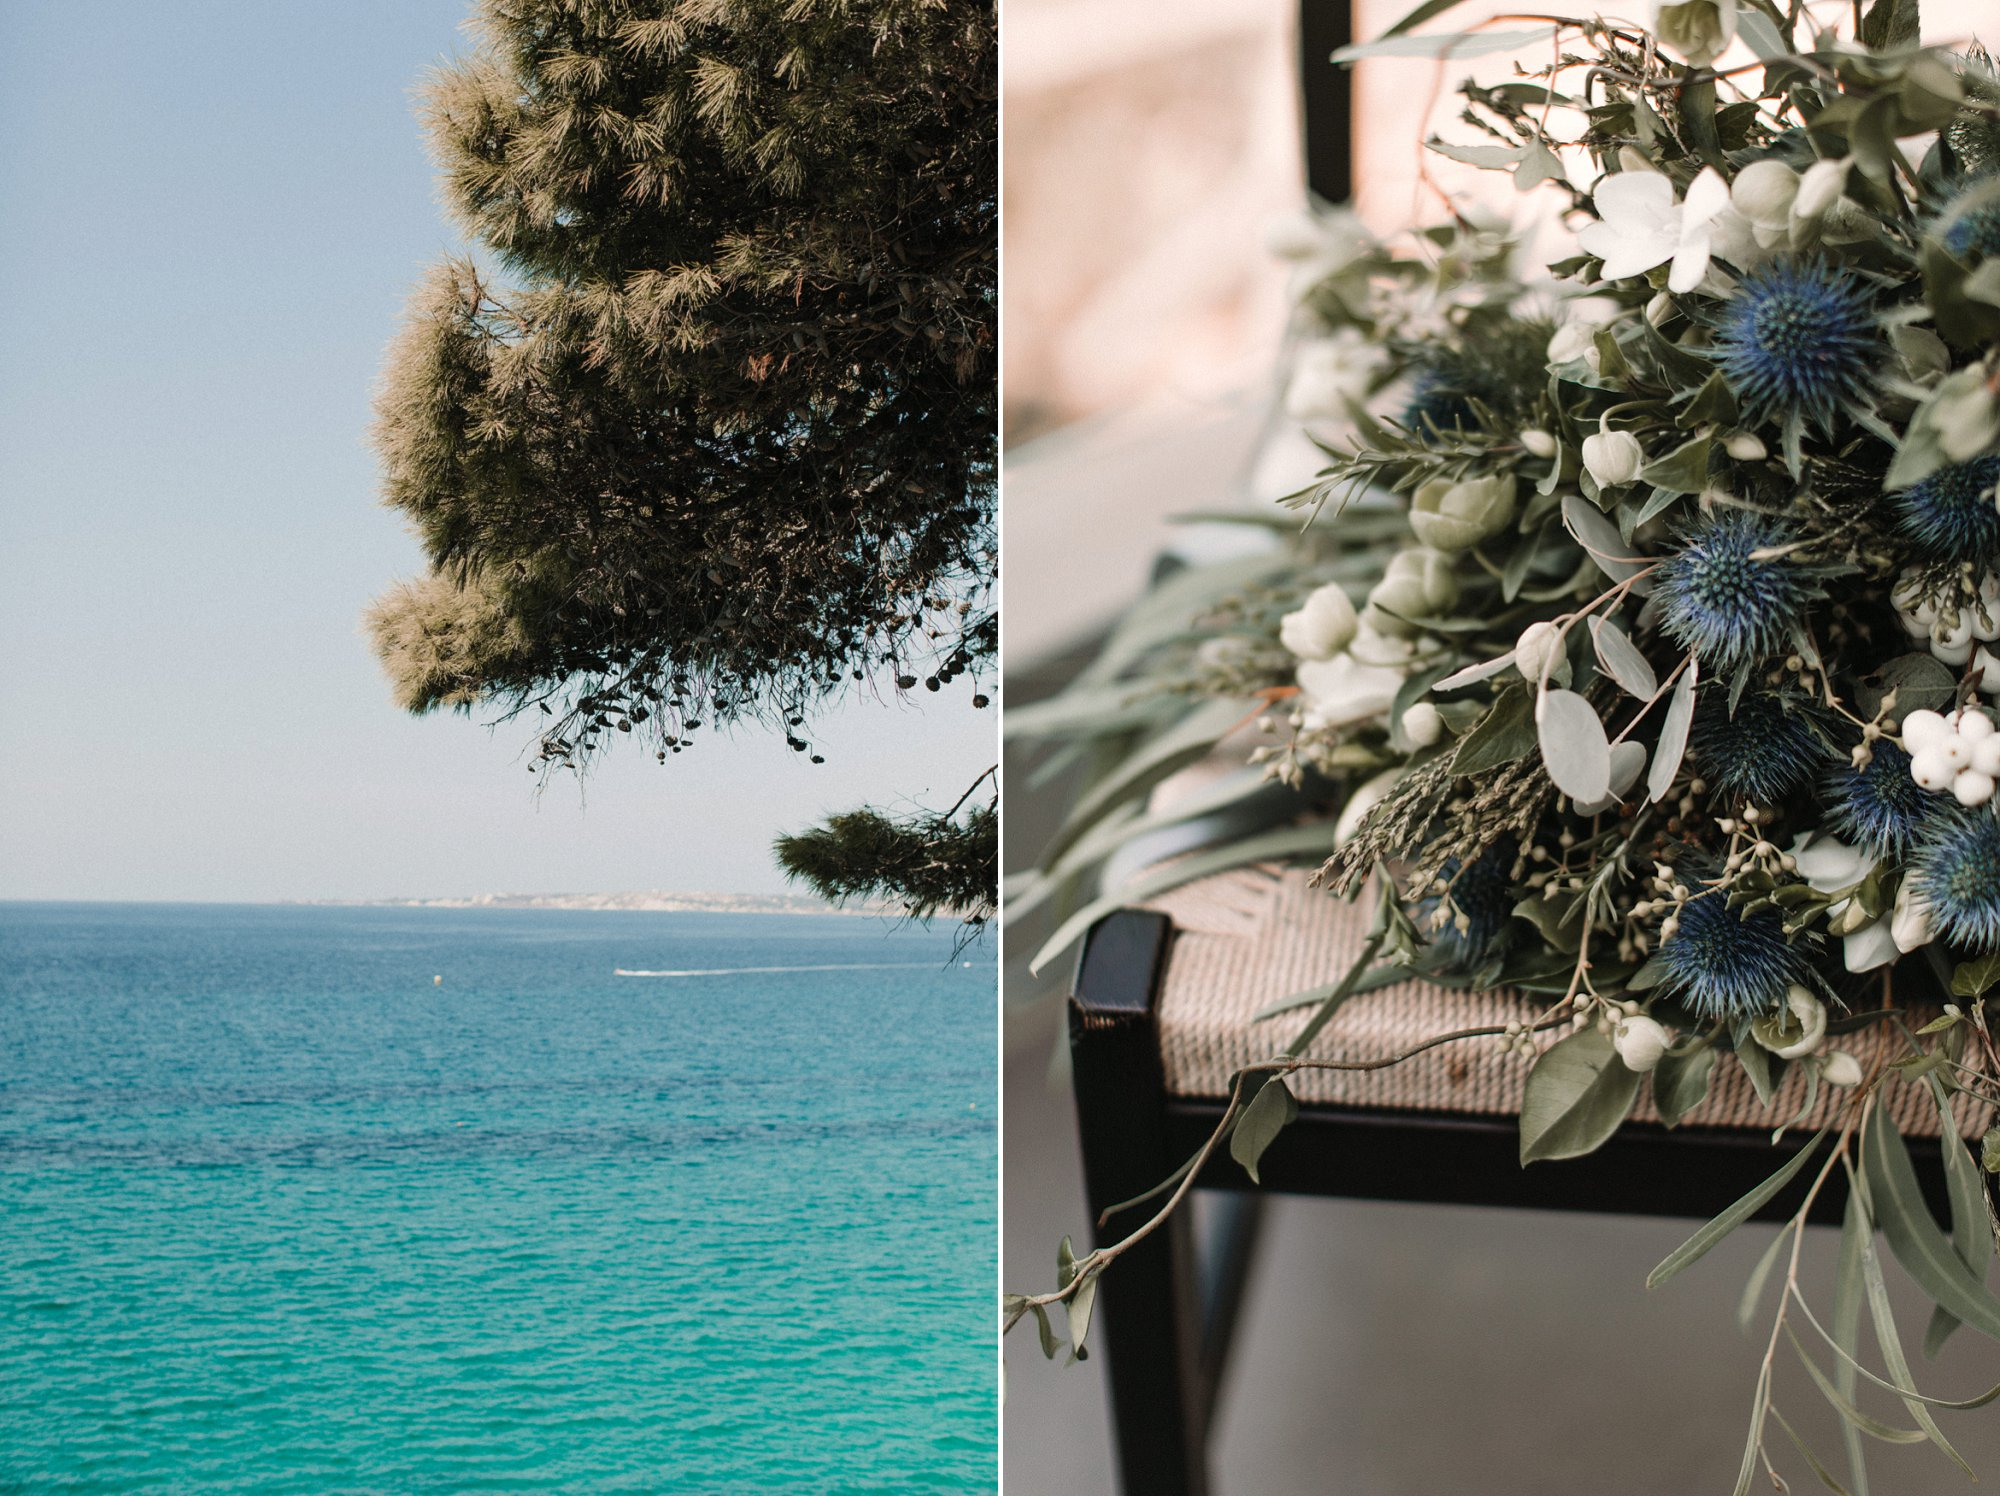 Romantic Wedding in Kefalonia at Katavathores club, with a stunning Grace Loves Lace wedding dress. Beautiful portraits by the agean sea. Relaxed couples session with all of the dancing. Romantic Kefalonia wedding photography. Photographed by Natalie Pluck. To see more from this wedding click here: https://www.nataliepluck.com/romantic-wedding-in-kefalonia/ #romanticweddingkefalonia #kefaloniawedding #graceloveslace #graceloveslaceweddingdress #laceweddingdress #relaxedweddinggreece #relaxedweddingphotography #kefaloniaweddingphotographer #kefaloniaweddingphotography #katavathoreswedding #katavathoresclub #romanticweddinginspiration #laidbackweddingphotography #weddingphotographyinspiration #greekweddings #weddingsingreece #weddingsbythesea #weddingbytheocean #weddinginspiration #weddinginspiration2019